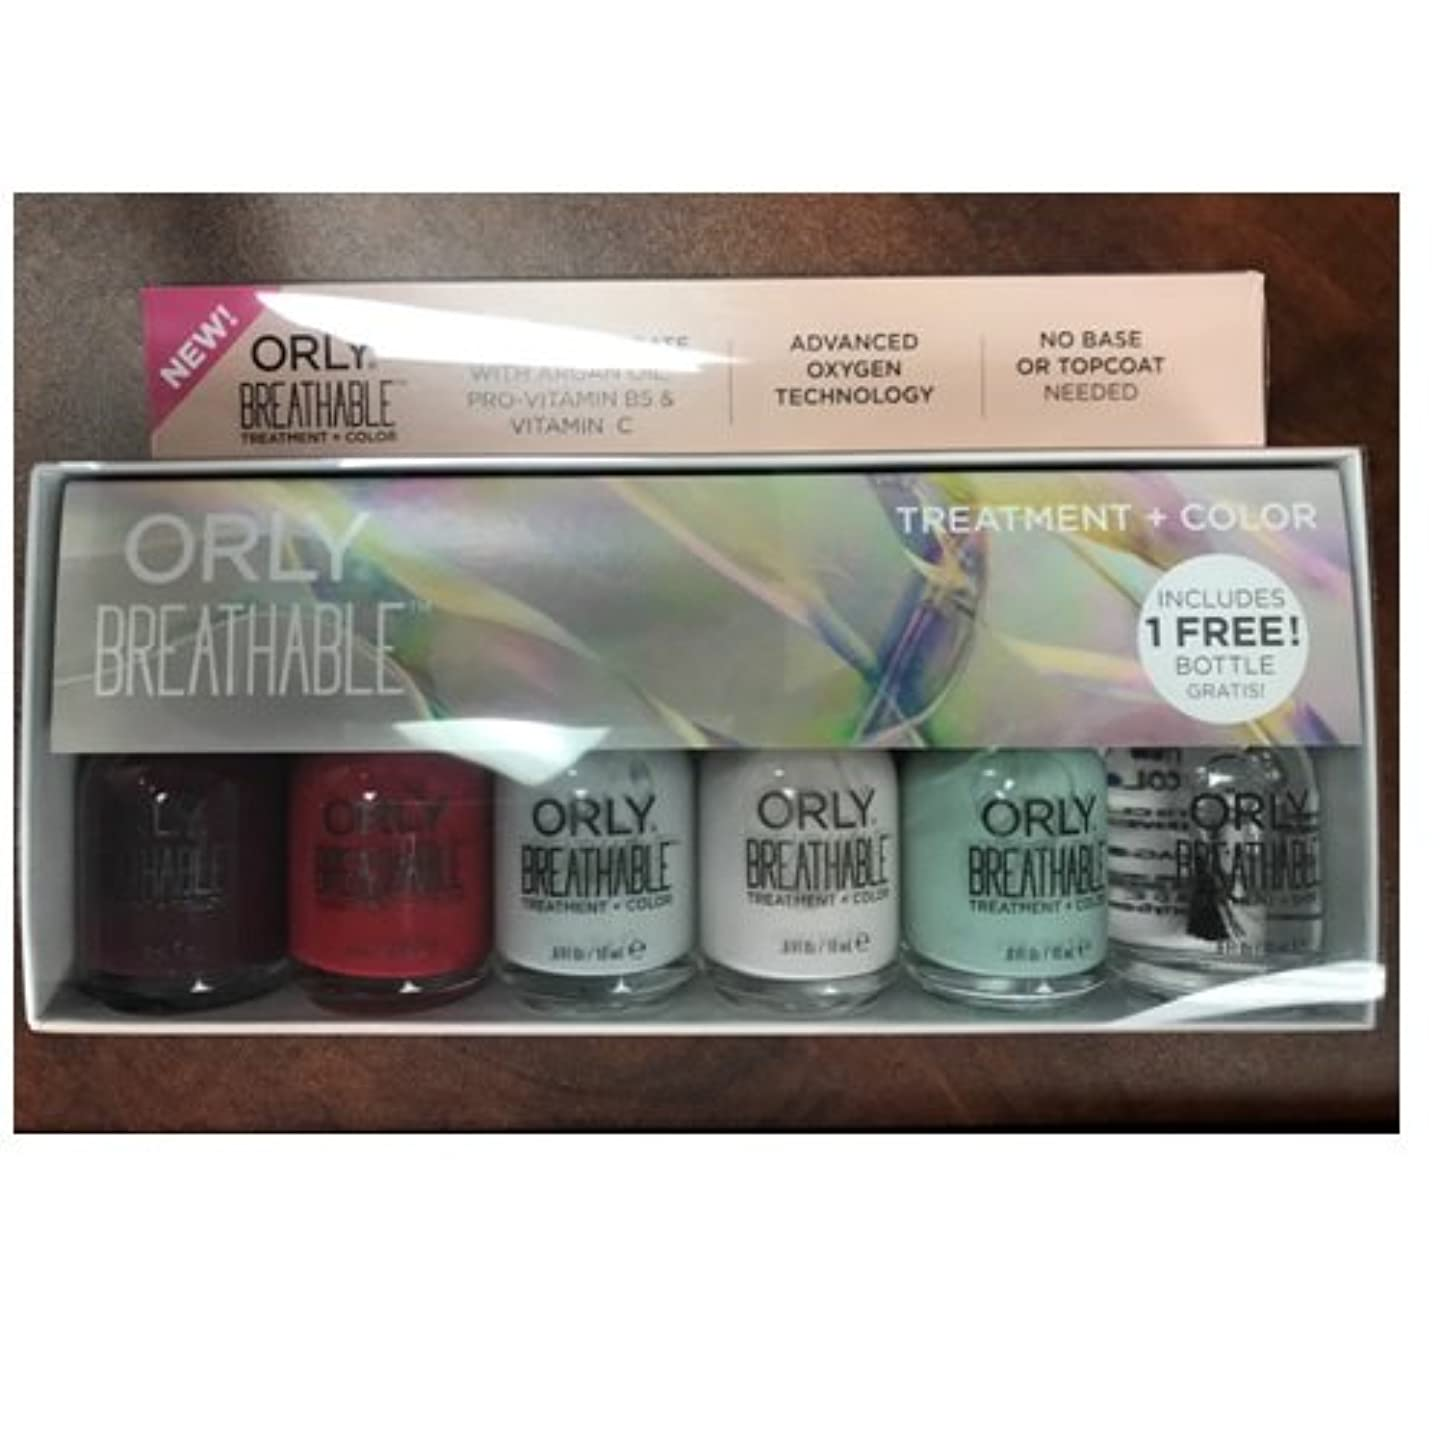 Orly Breathable Nail Lacquer - Treatment + Color - 6 Piece Kit - 18ml / 0.6oz Each